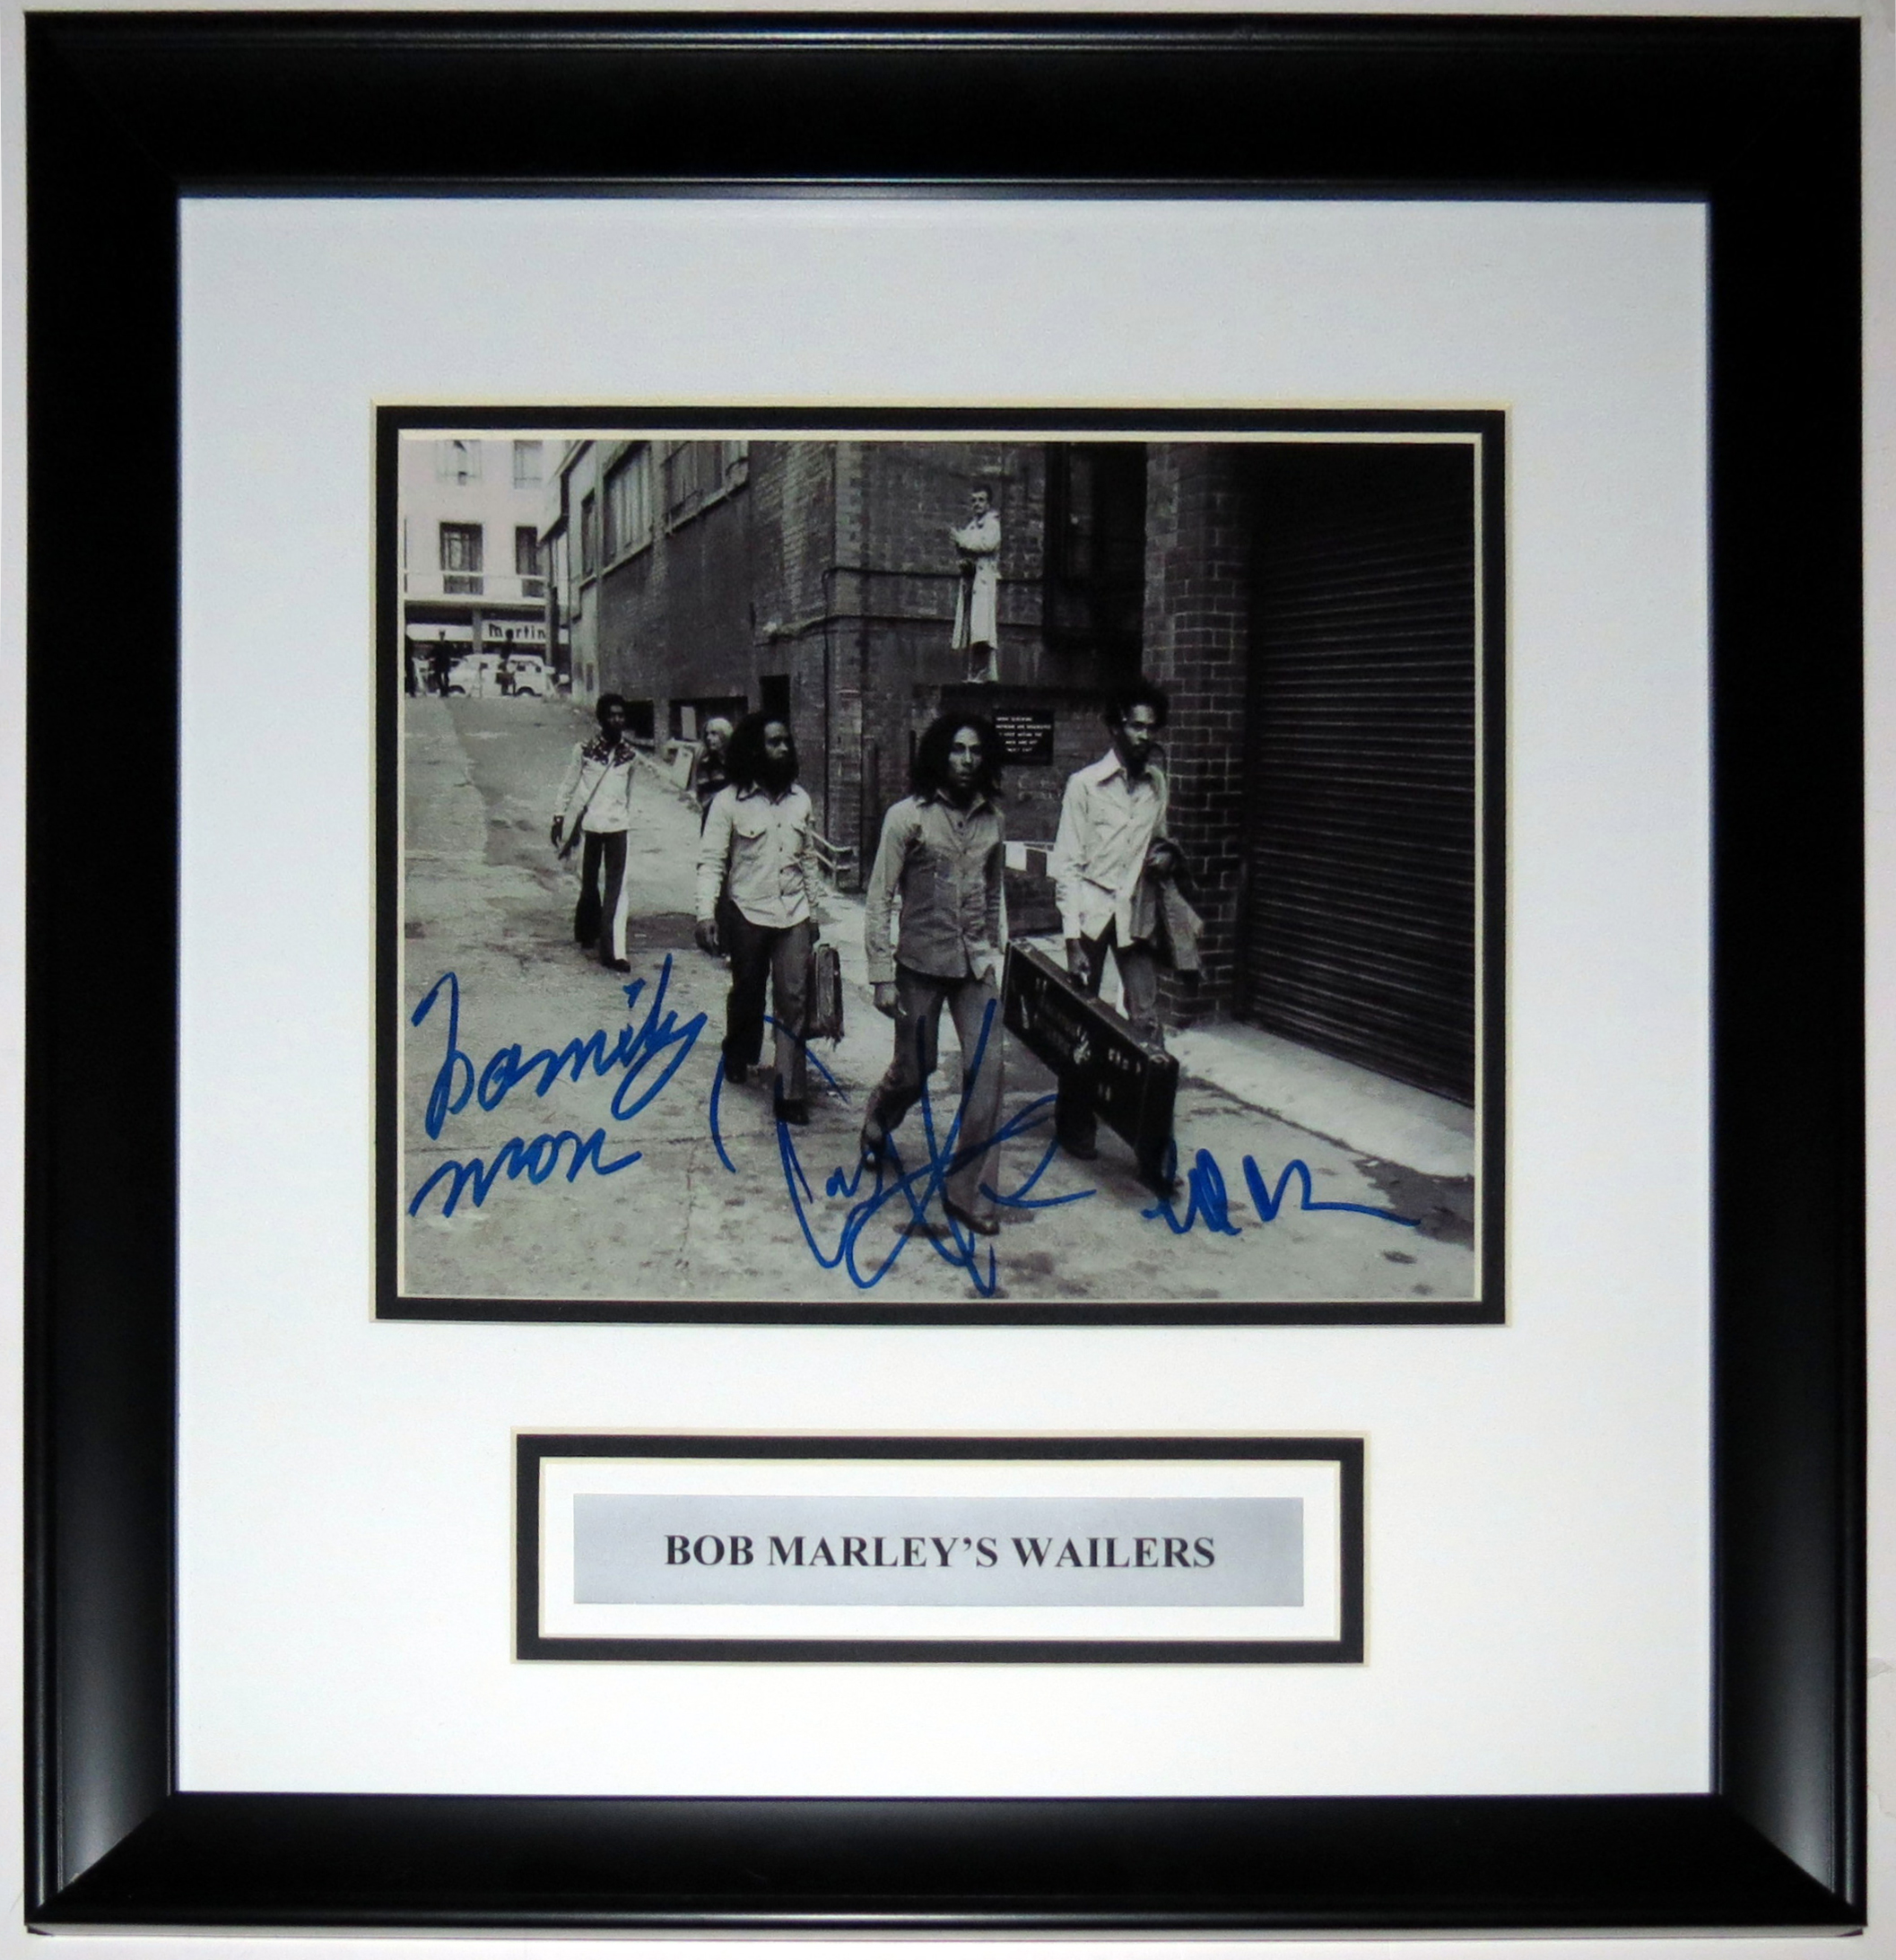 Bob Marley's Wailers Group Signed 8x10 Photo - Professionally Framed & Plate